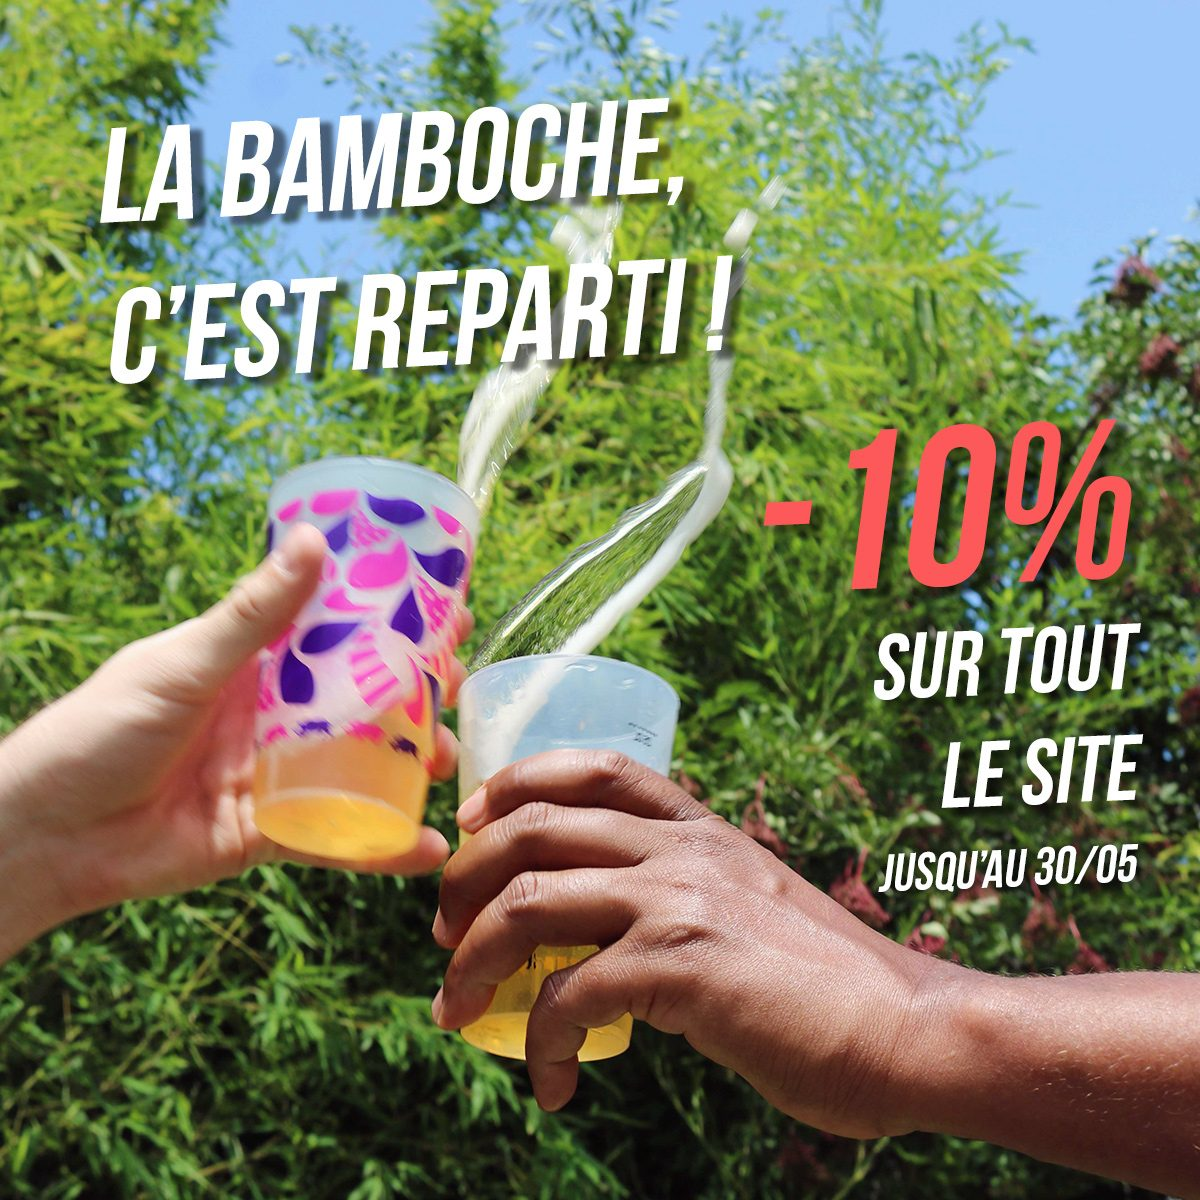 Bamboche-accueil-cup_1_